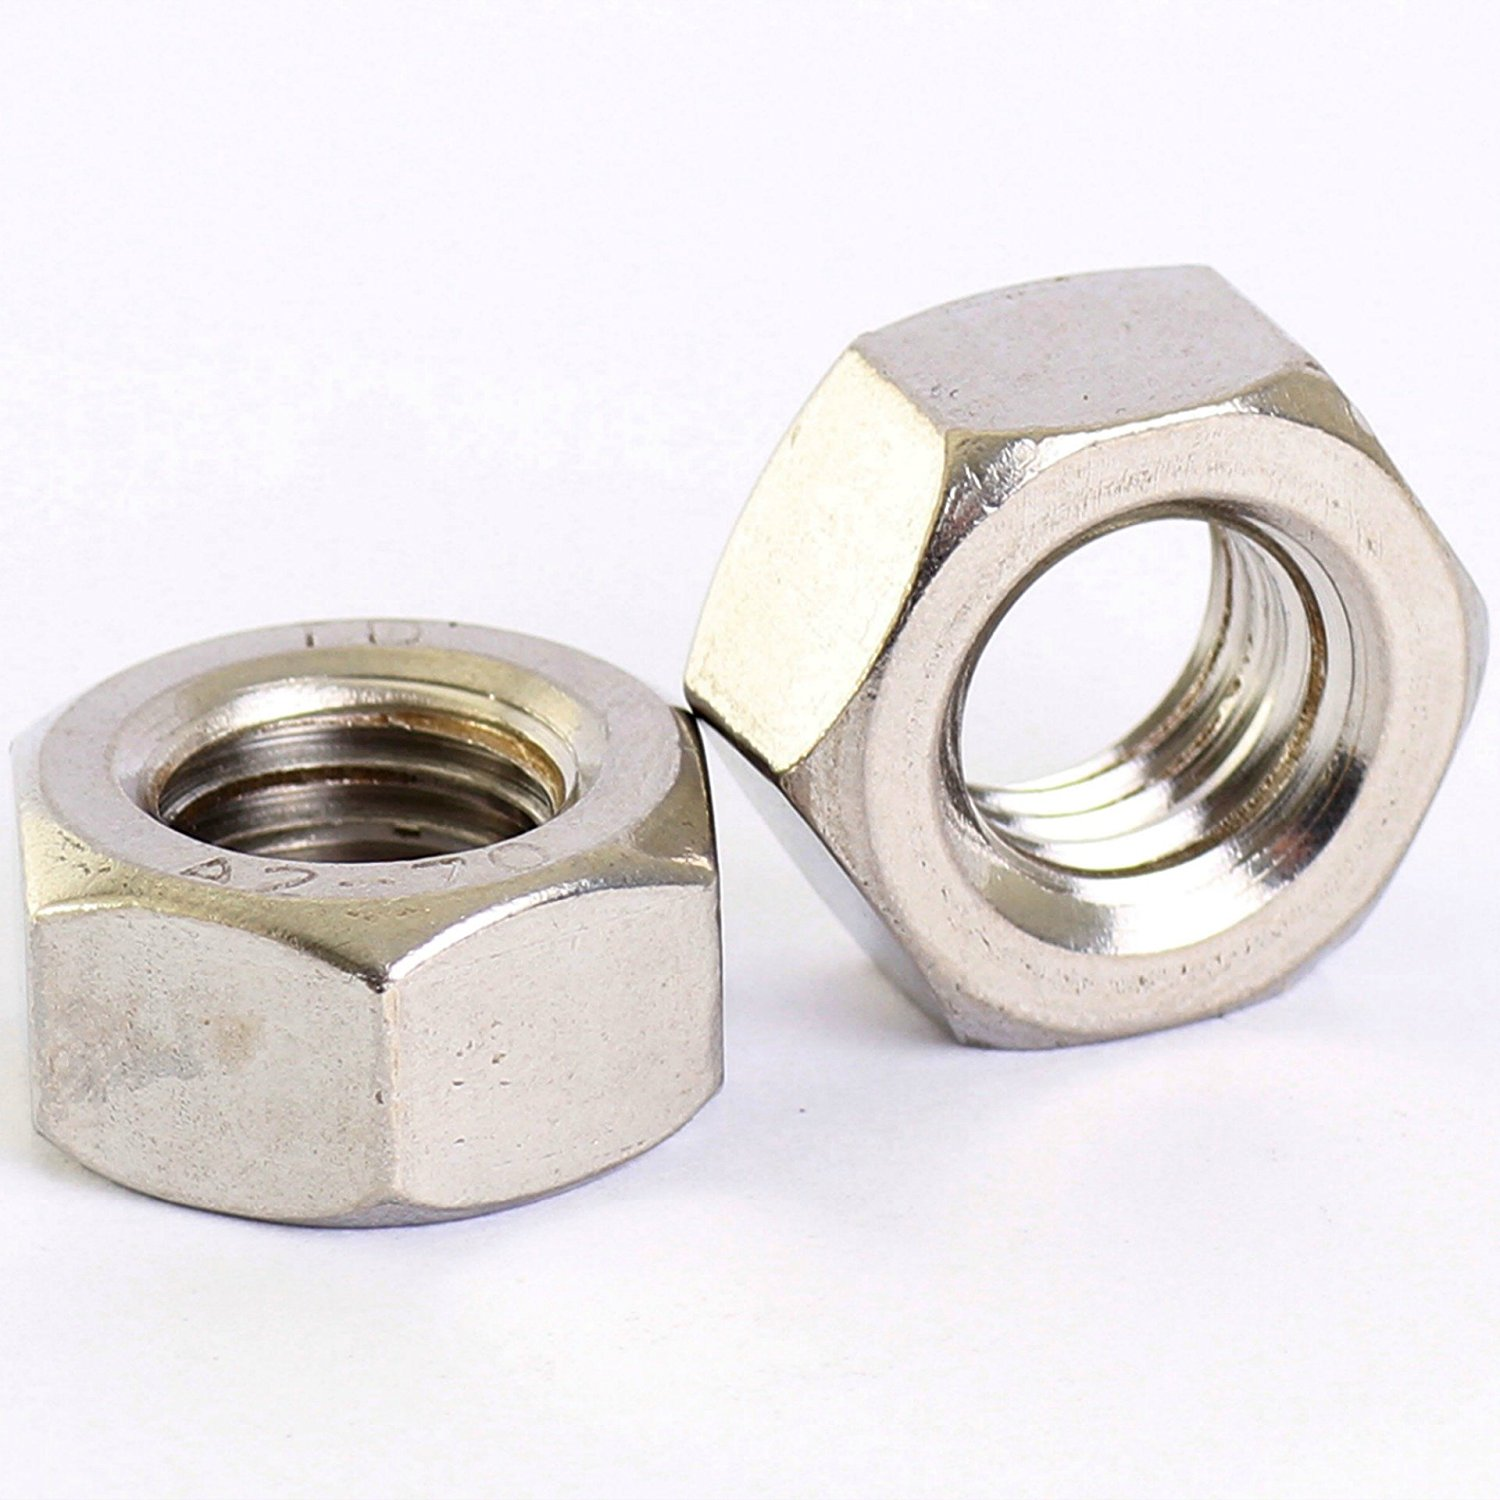 Metric Extra Fine M20 x 1.5mm A2 Stainless Steel Hexagon Full Nuts